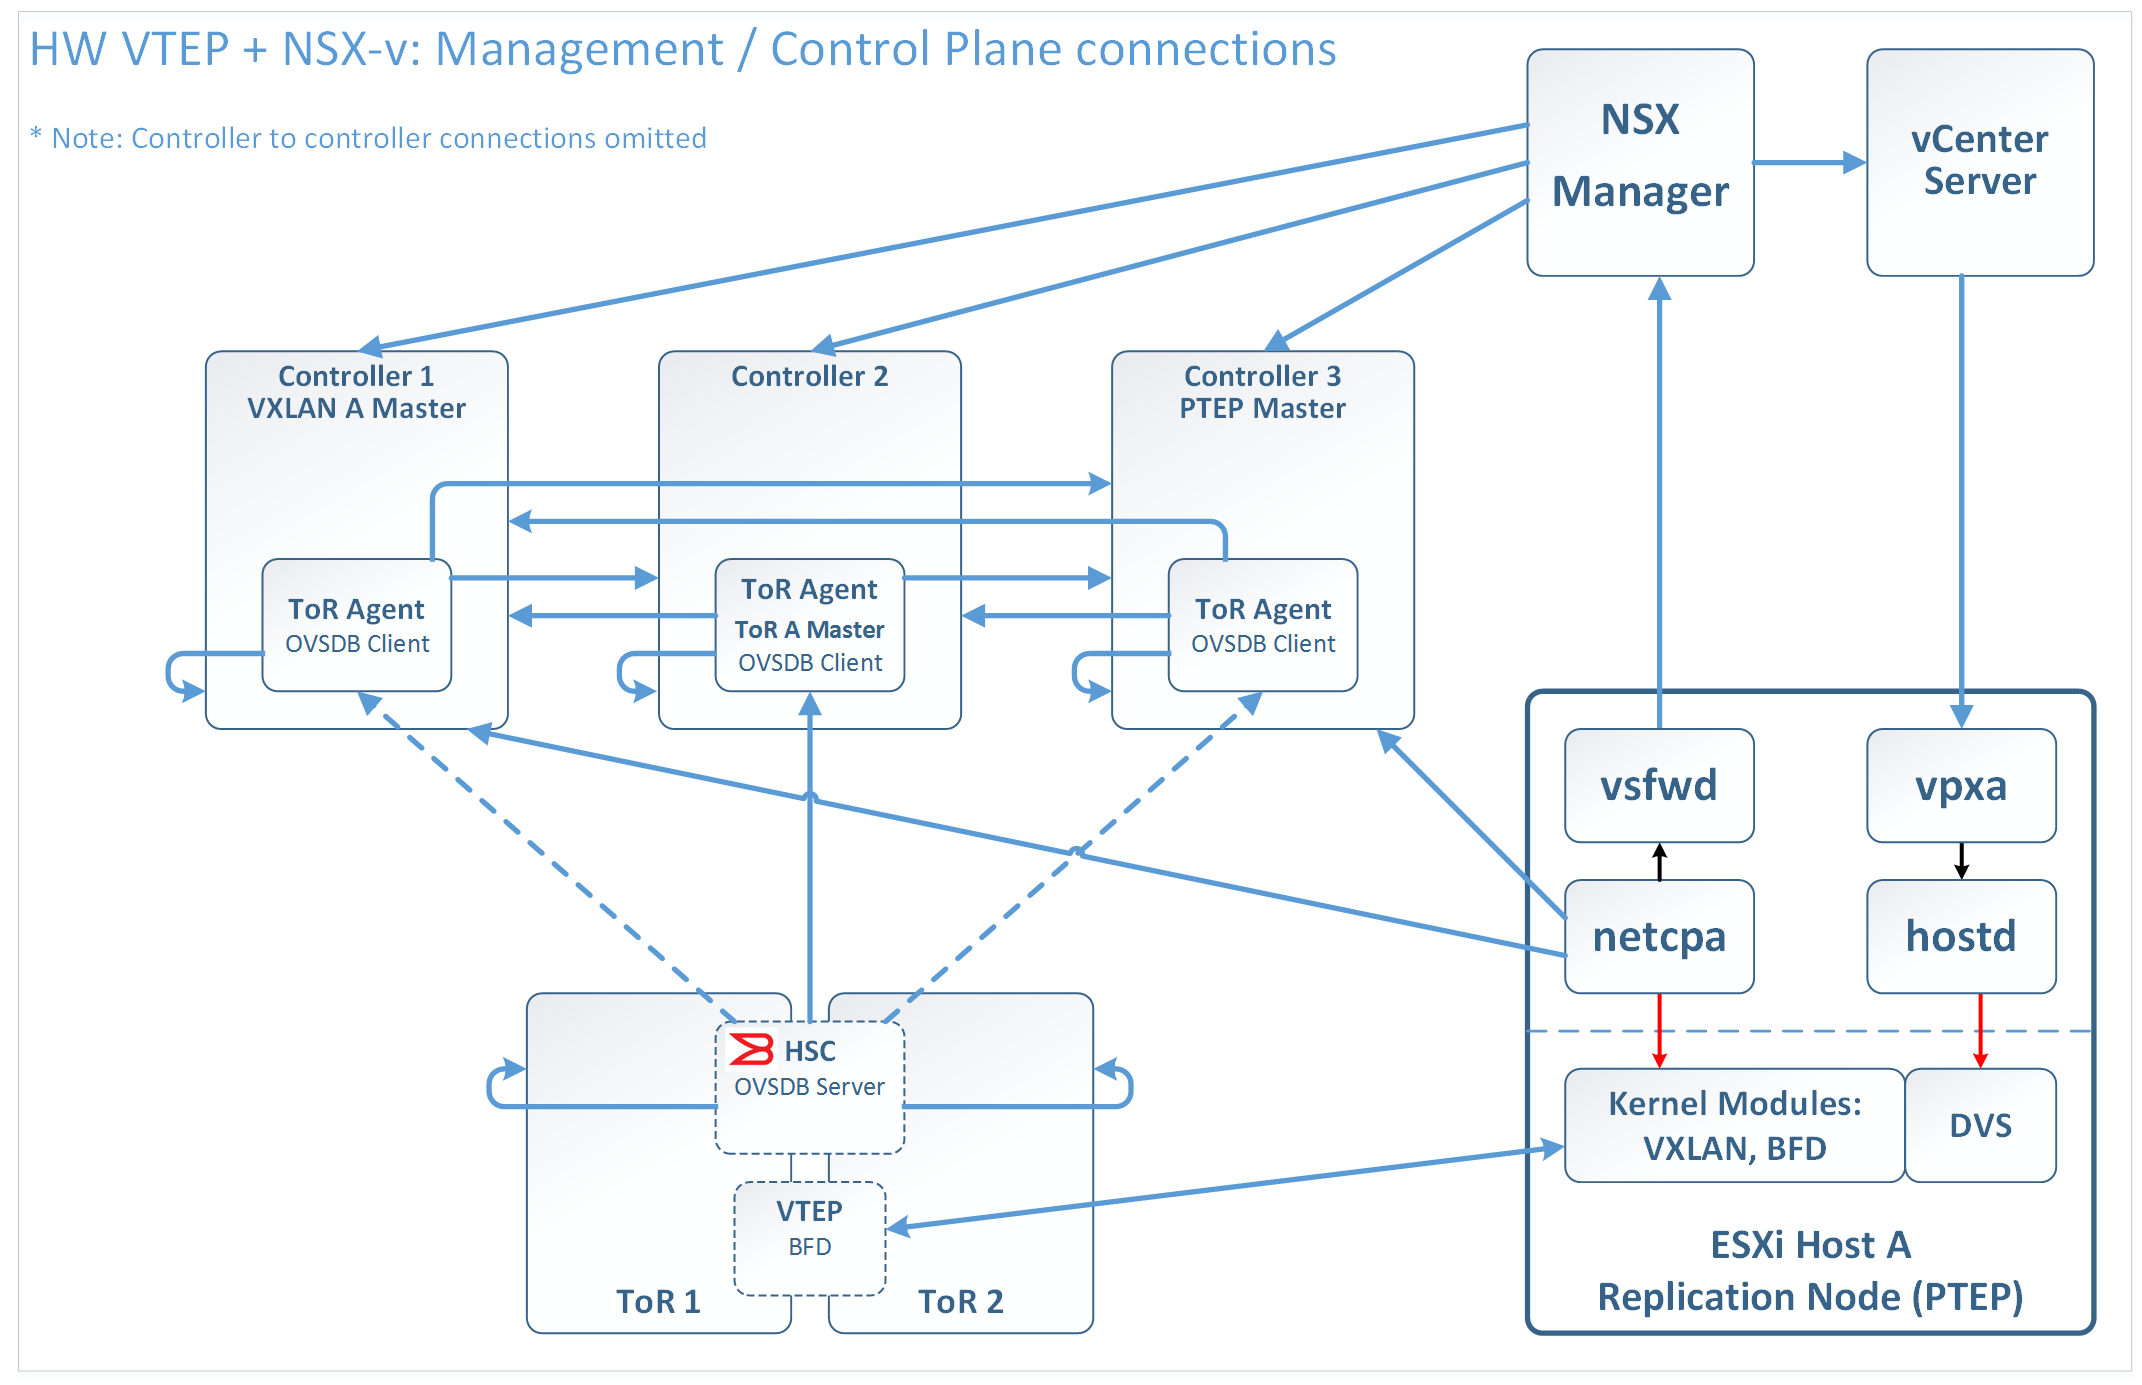 Planning deployment of a Hardware VTEP with NSX for vSphere